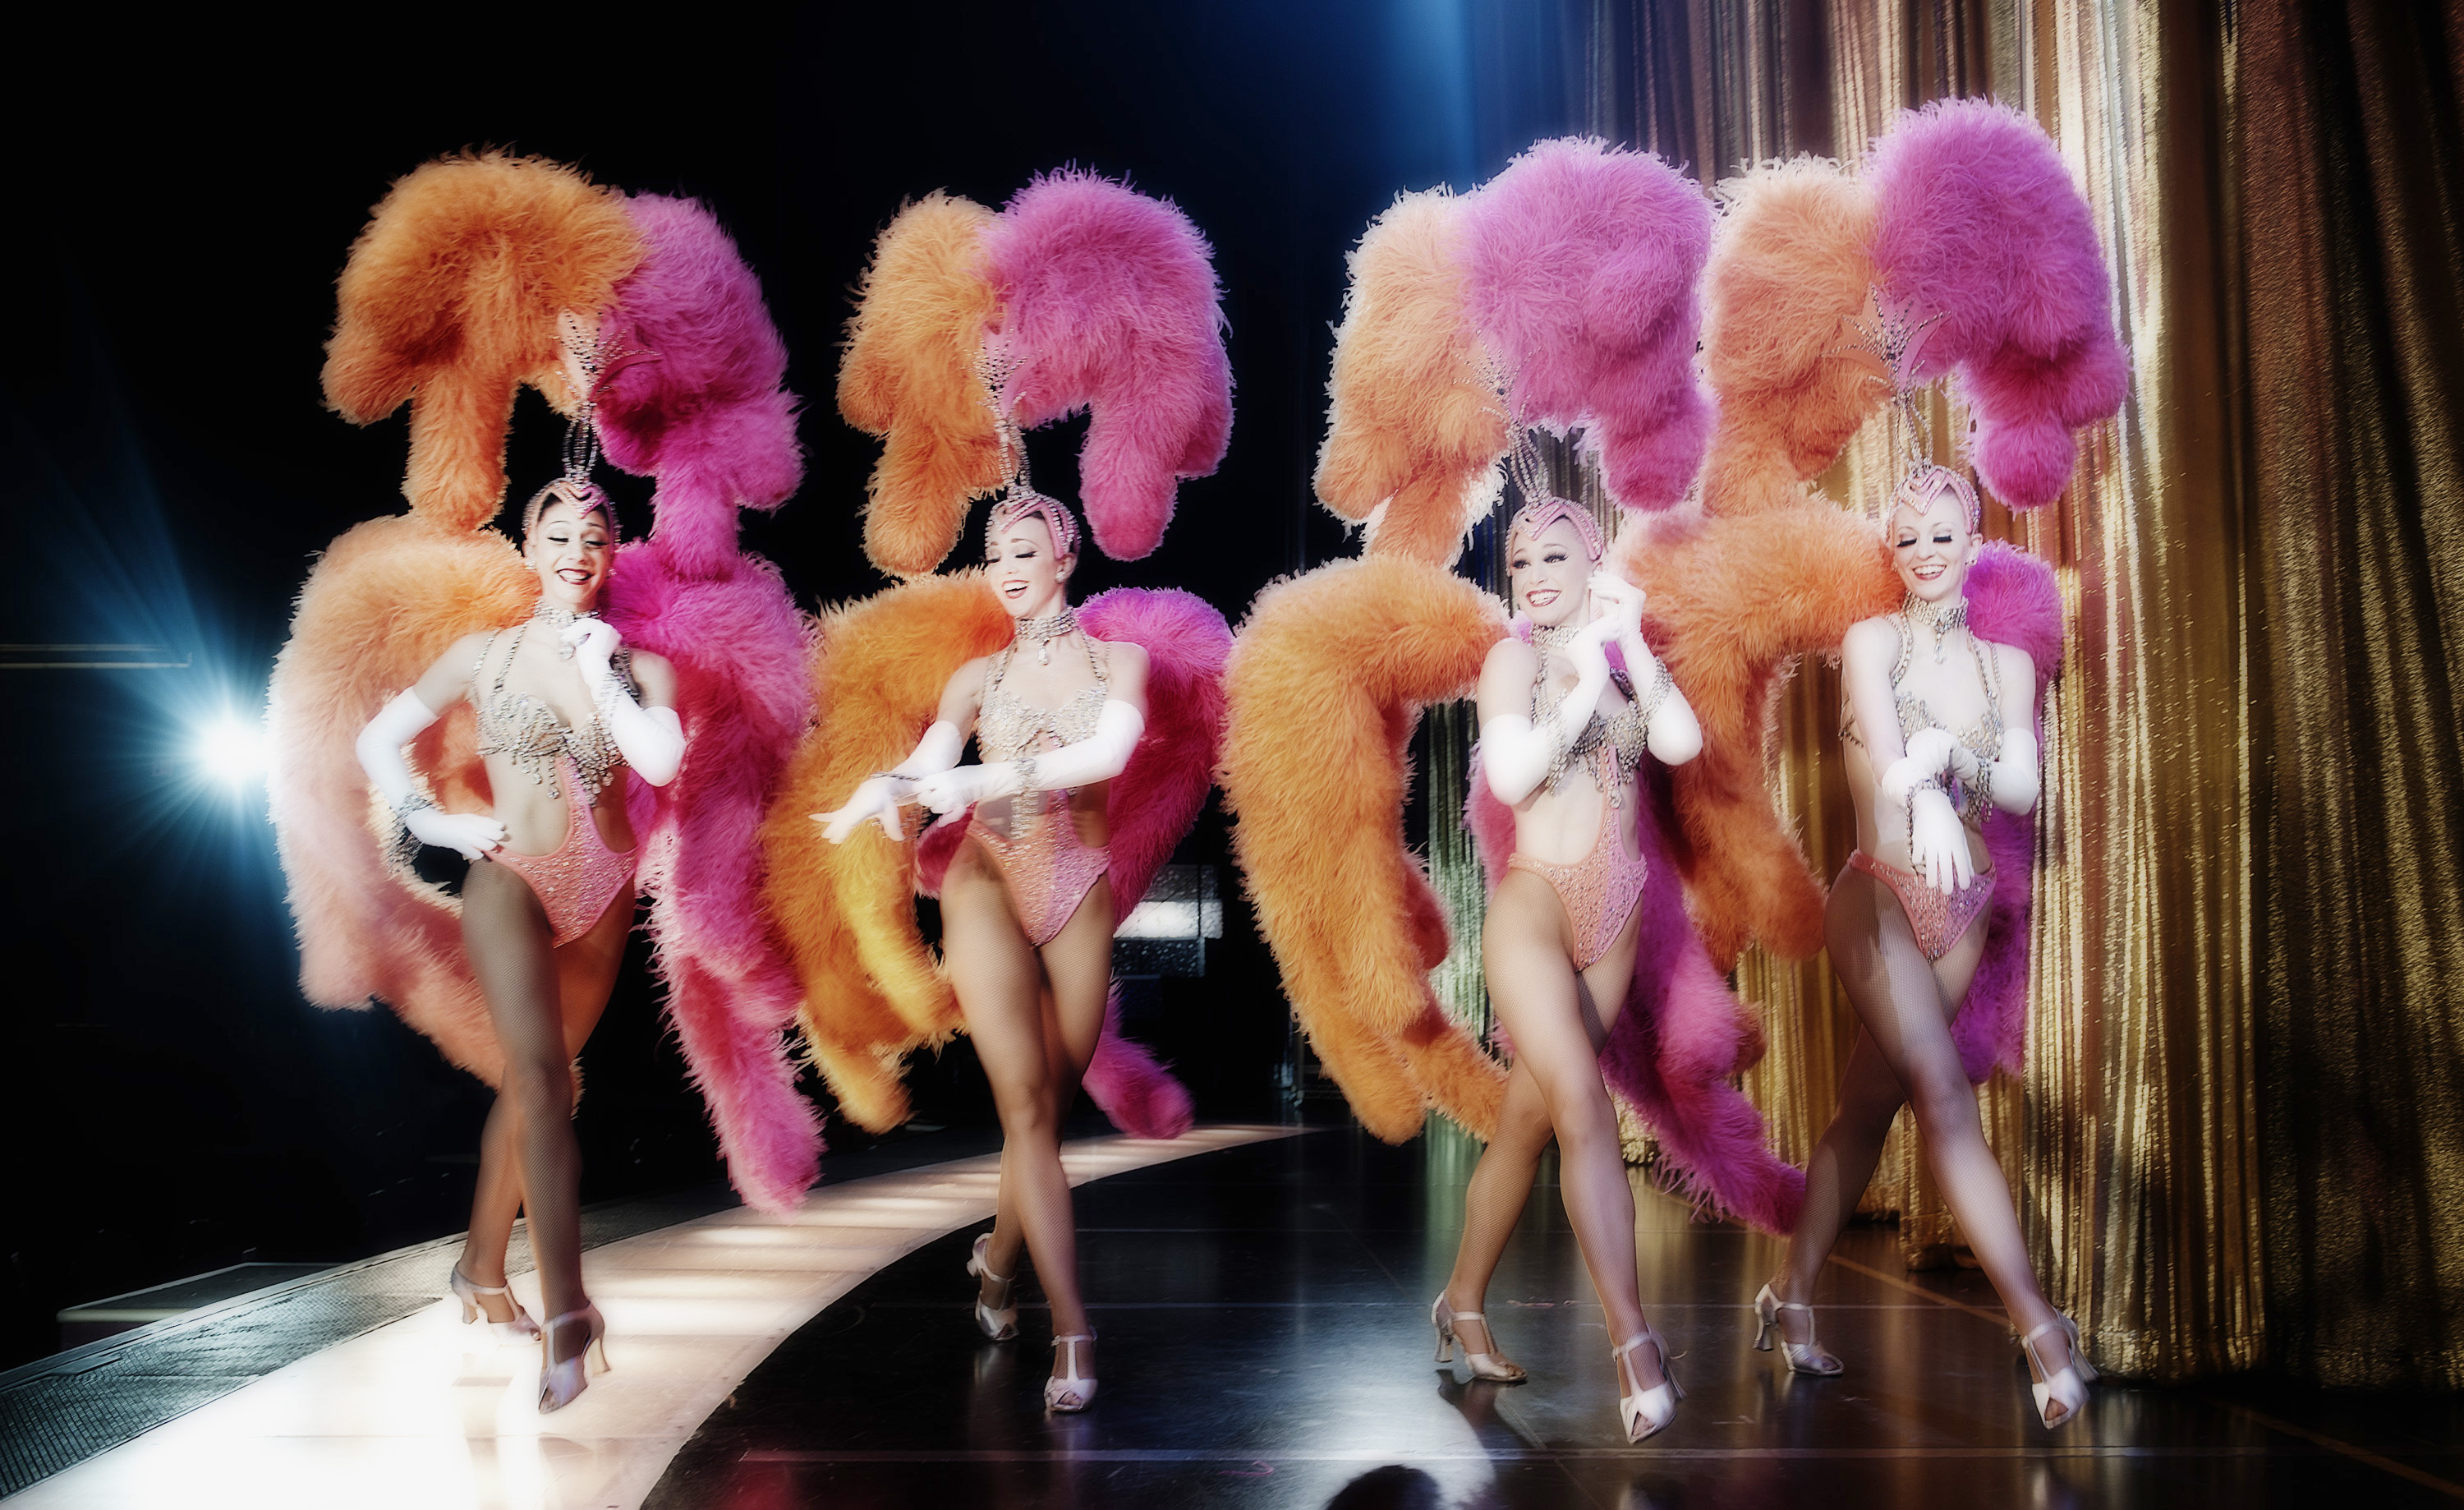 Feathered nude showgirls